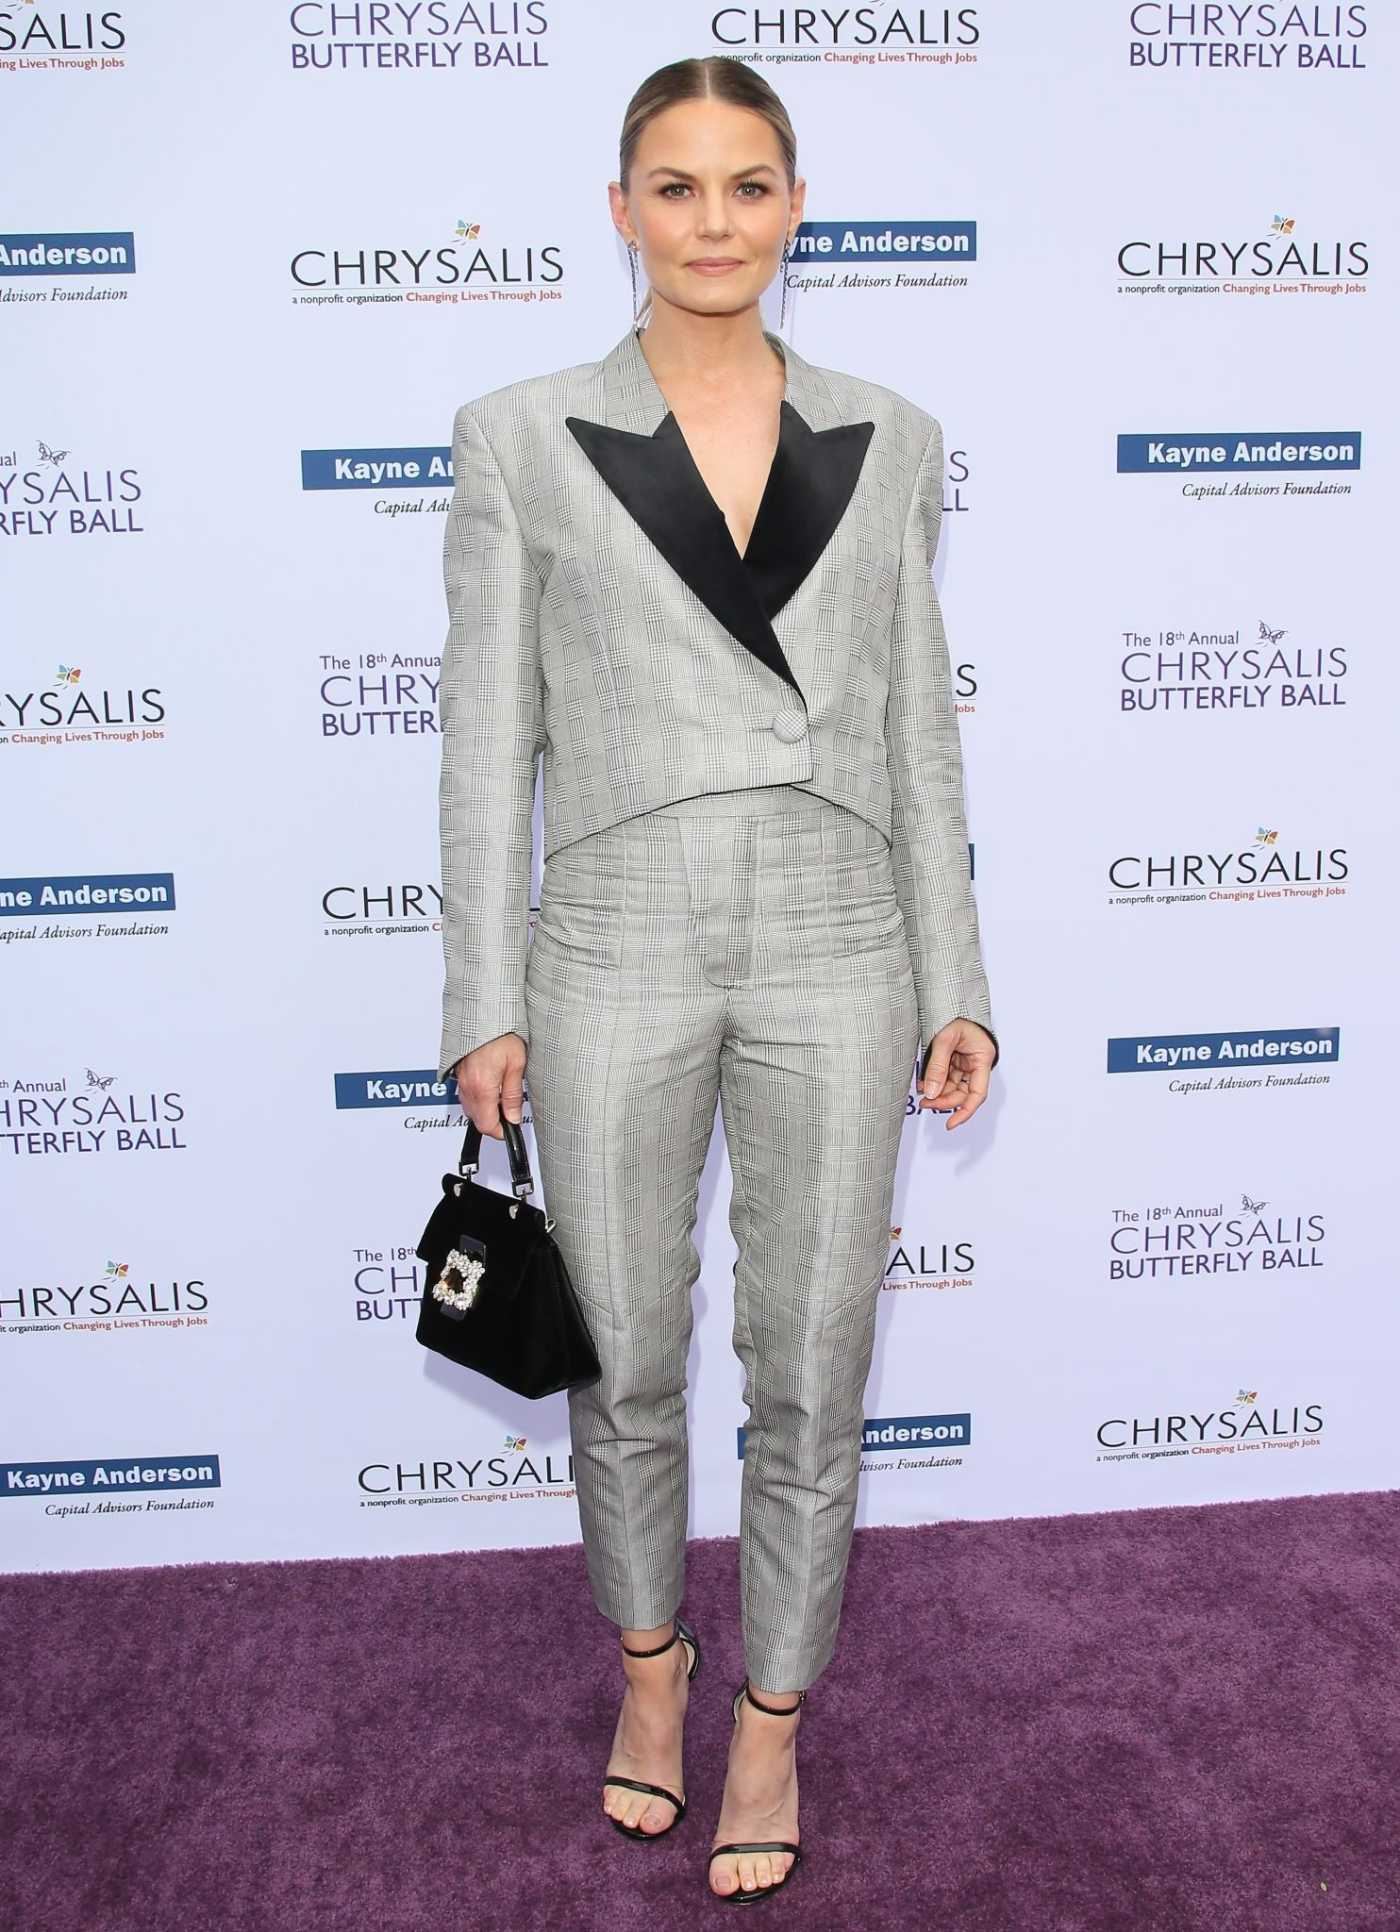 Jennifer Morrison Attends the 18th Annual Chrysalis Butterfly Ball in Brentwood 06/01/2019